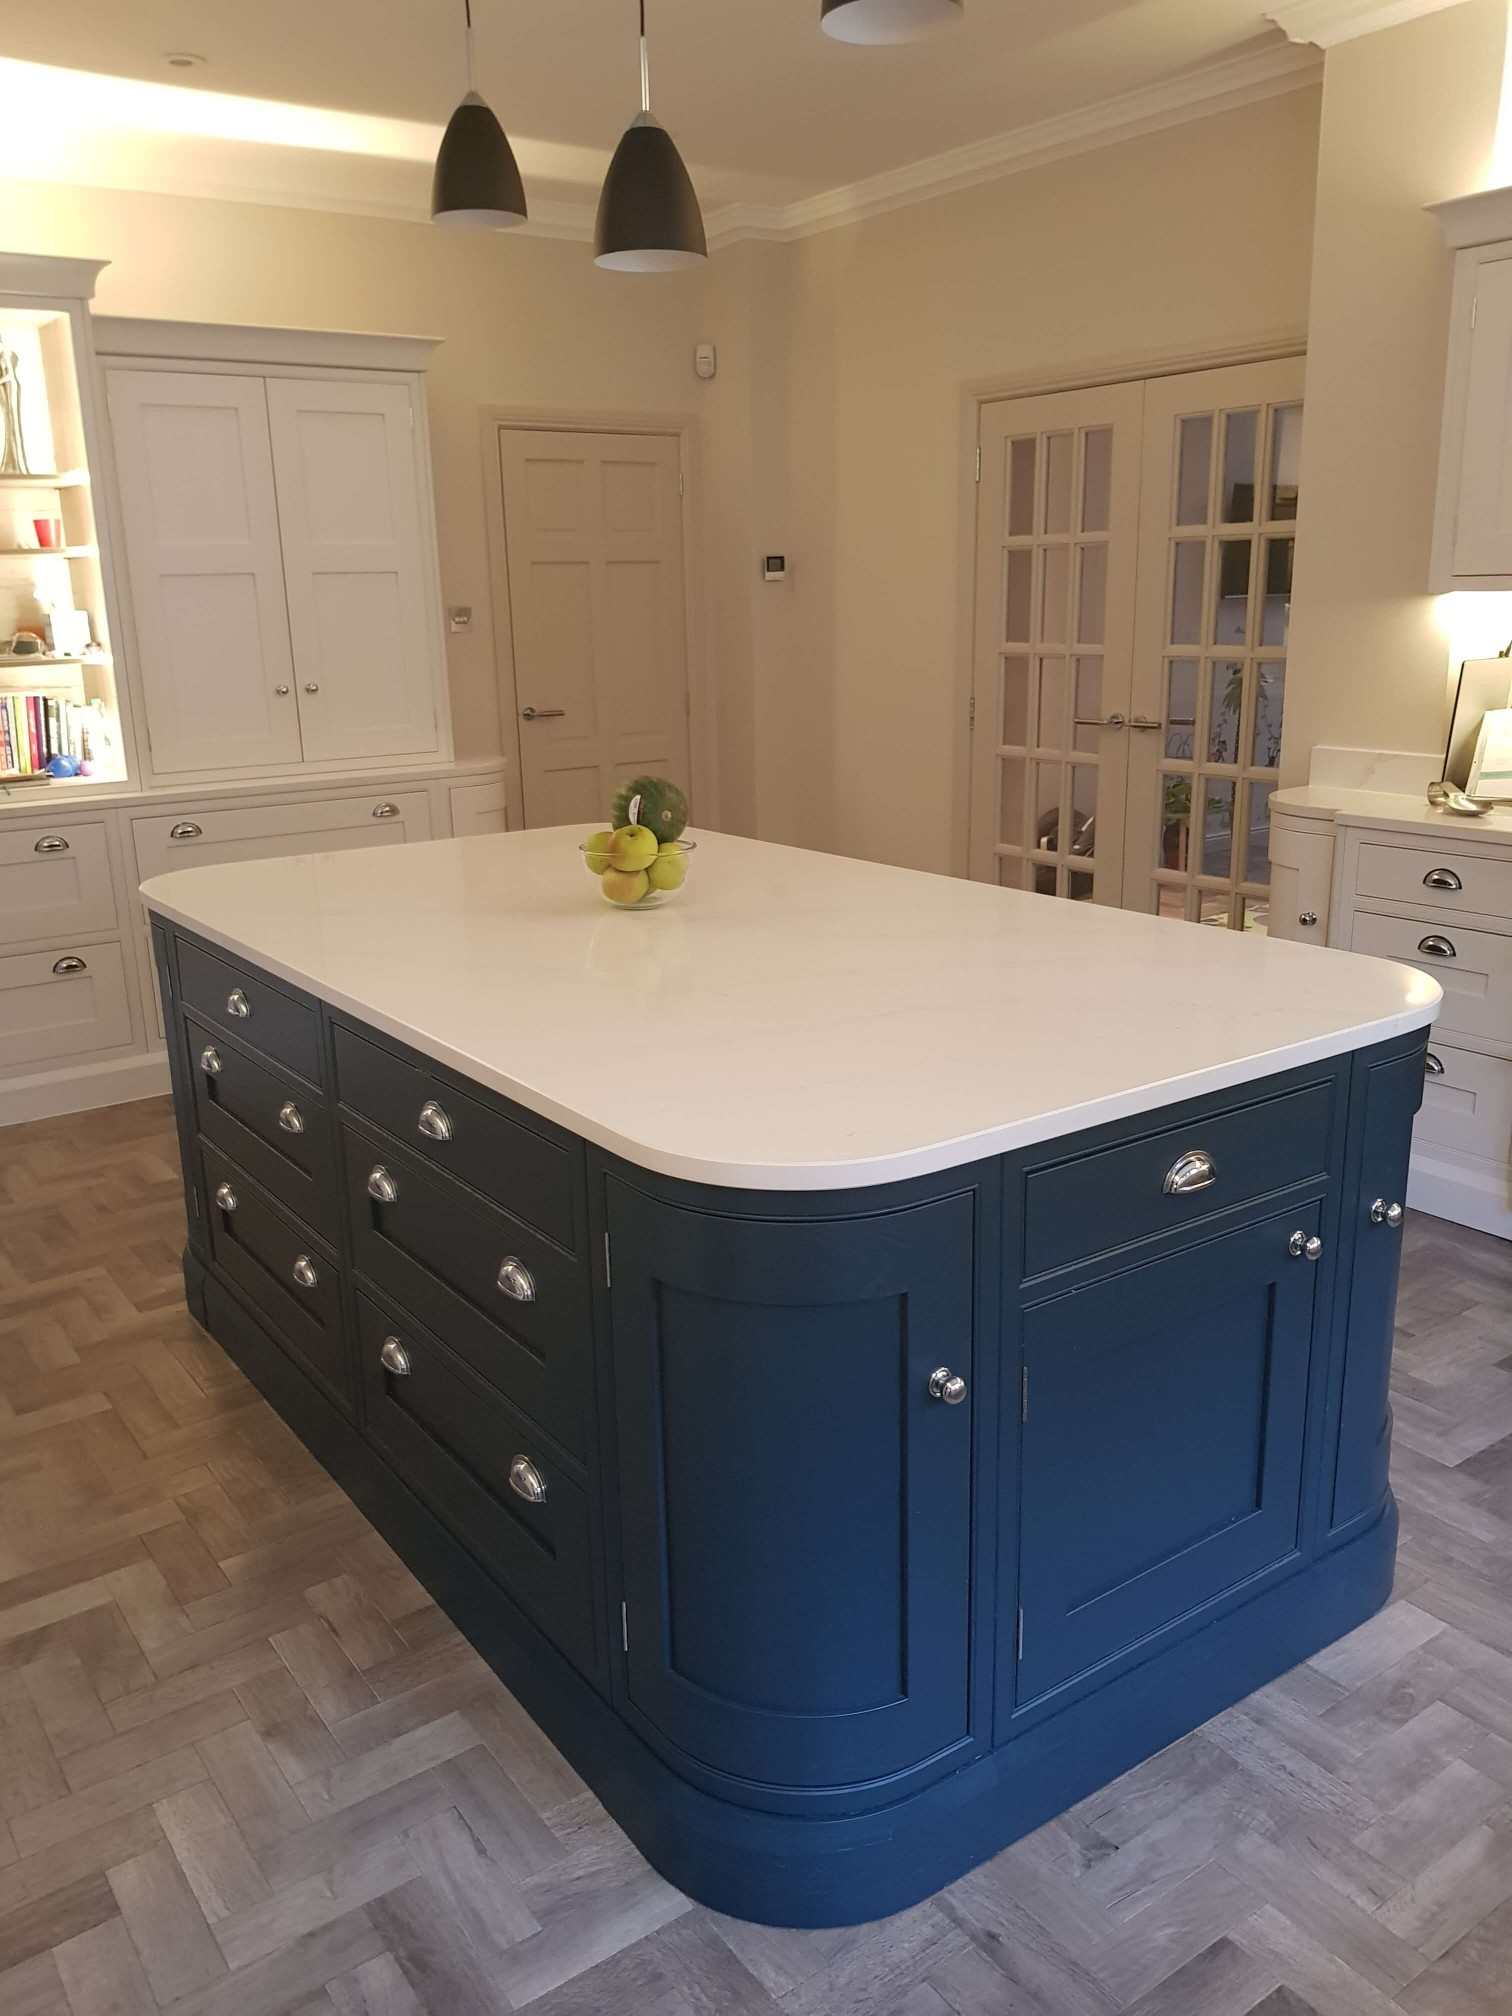 Bespoke Inframe Kitchen